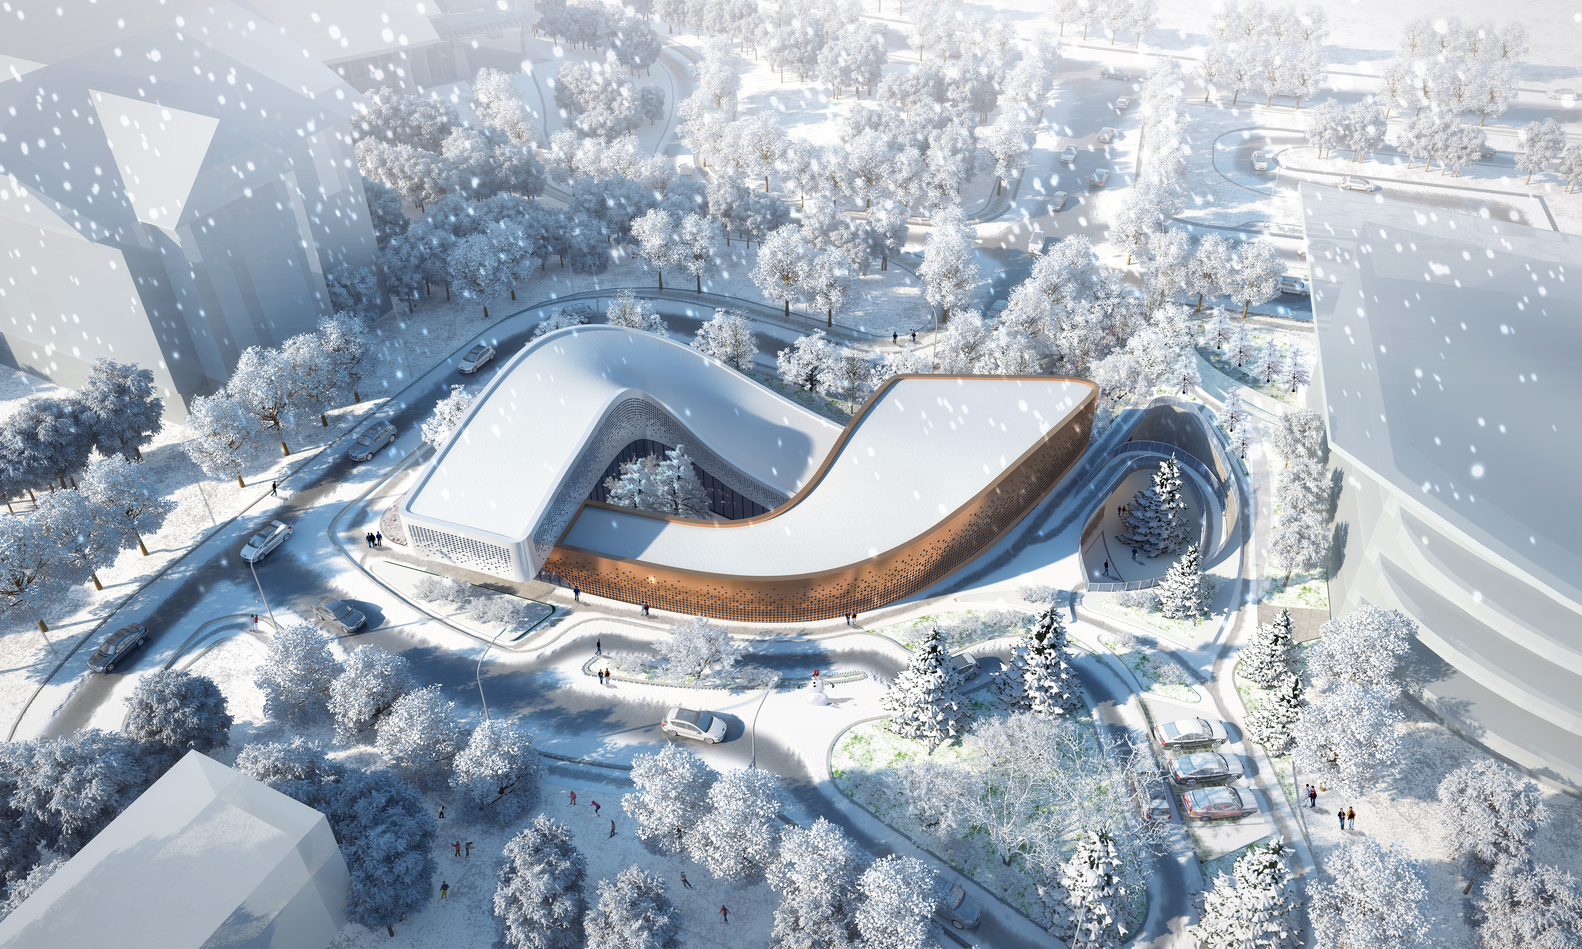 gallery of groupgsa wins competition for the 2022 winter olympics